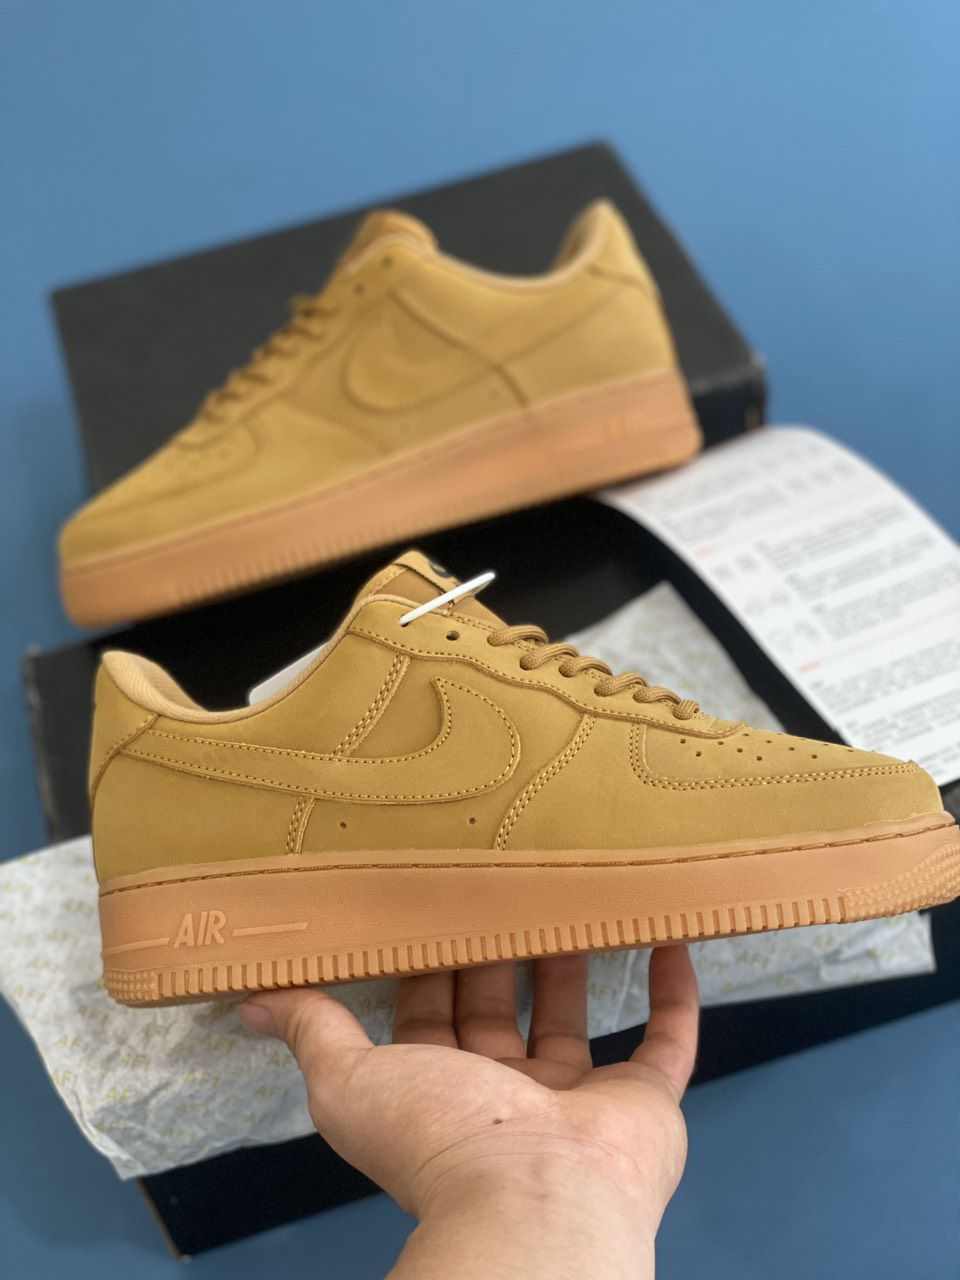 Nike Air Force 1 Low Flax Rep